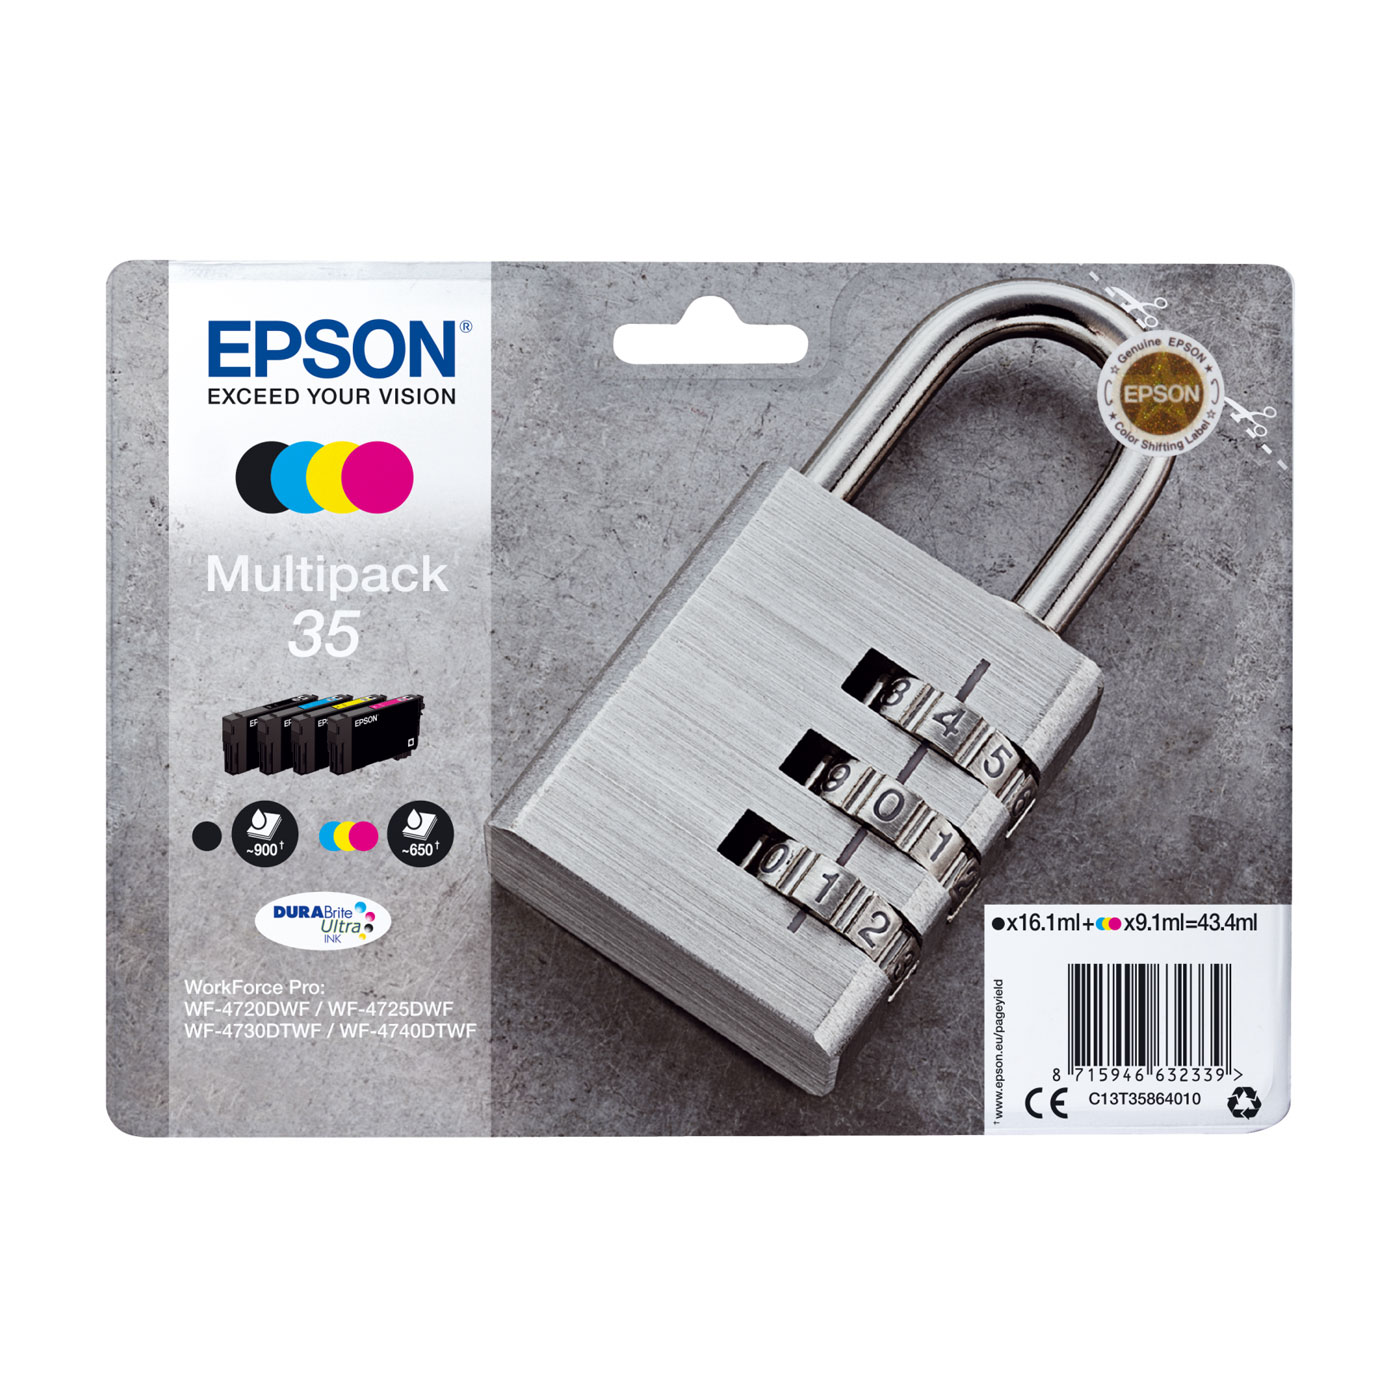 epson cadenas multipack 35 cartouche imprimante epson. Black Bedroom Furniture Sets. Home Design Ideas